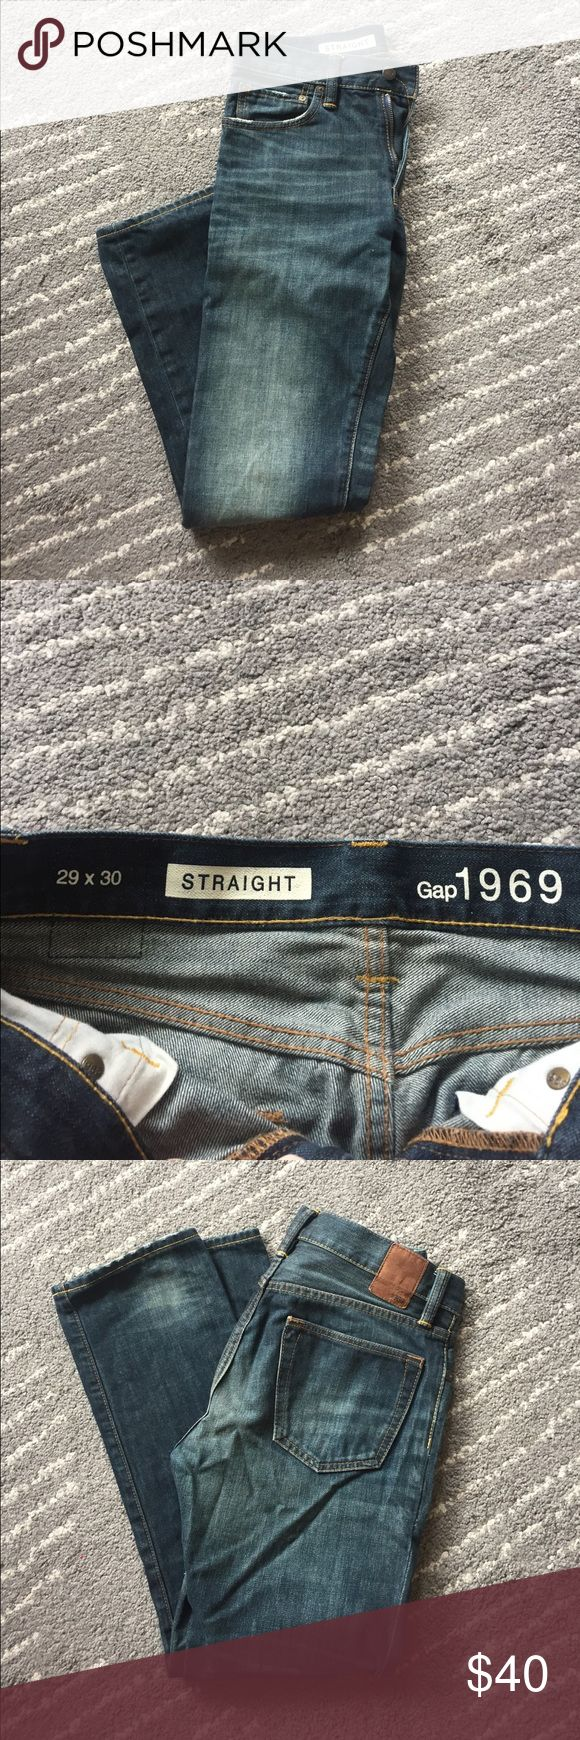 Gap Jeans - Men's 29x30 Straight Fit Gap Jeans, 29x30 GAP Jeans Straight